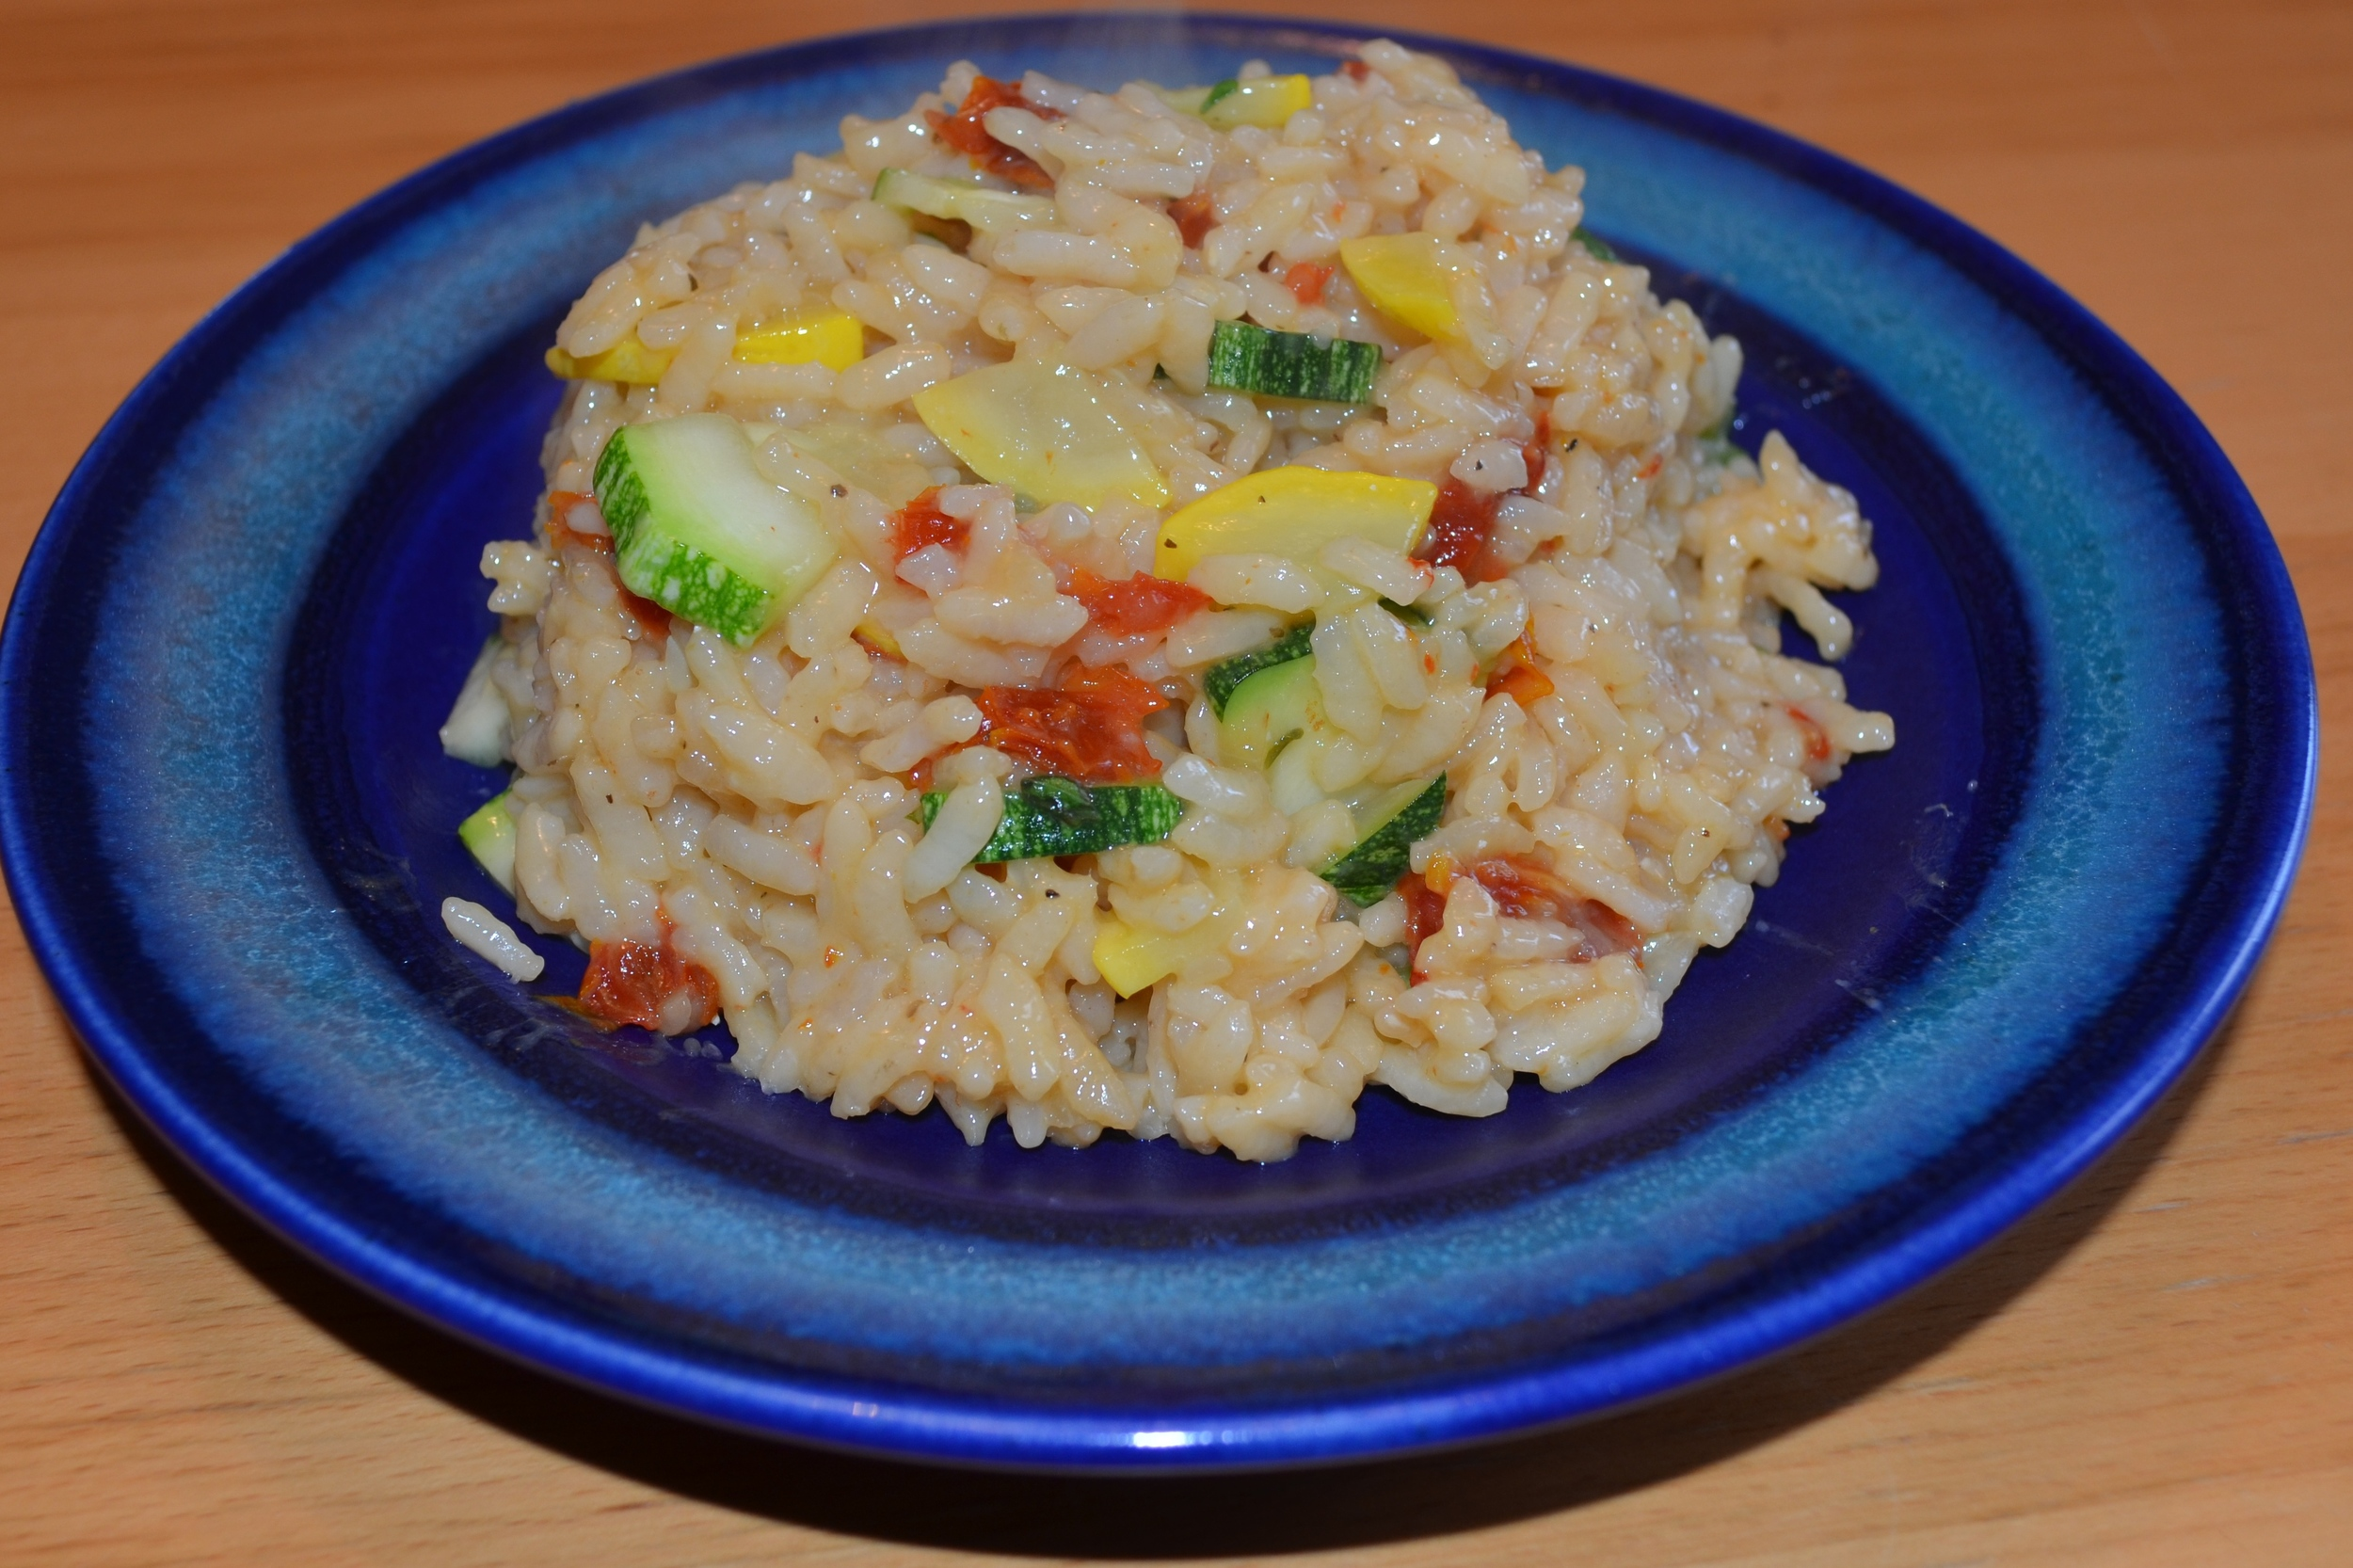 Summer Squash and Sun-dried Tomato Risotto